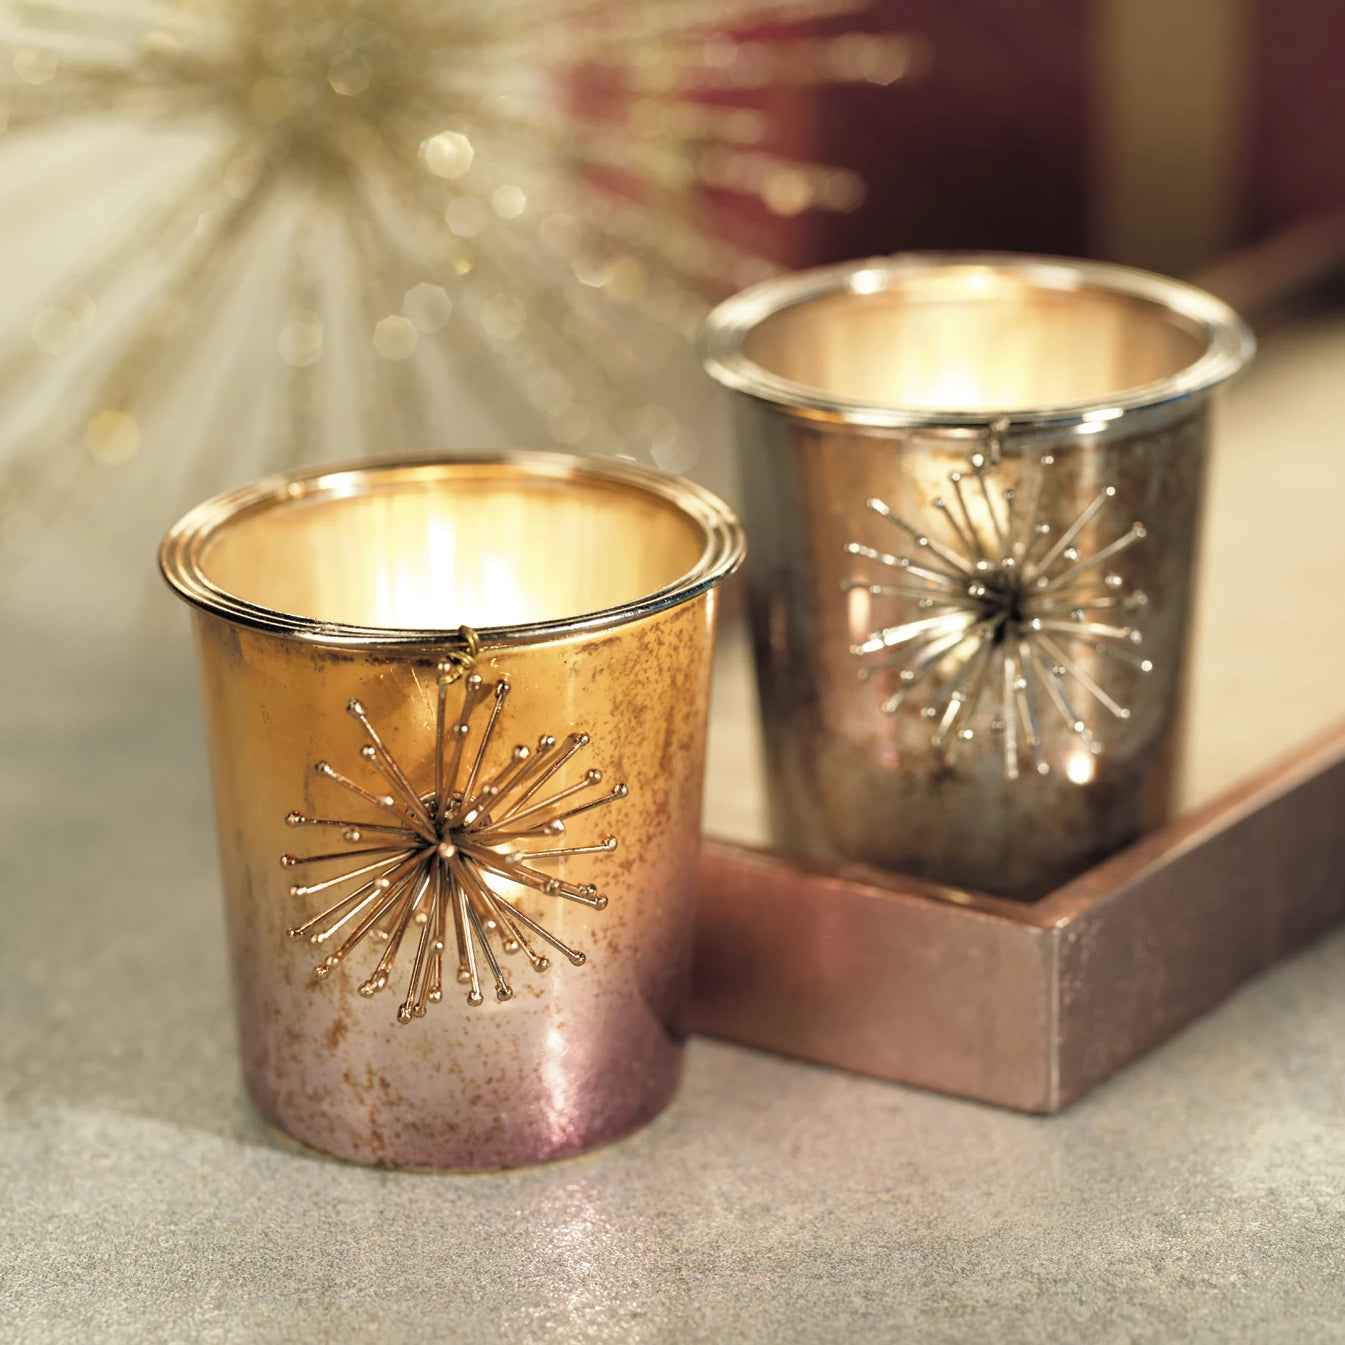 Starburst Tealight Holder - s/6 - CARLYLE AVENUE